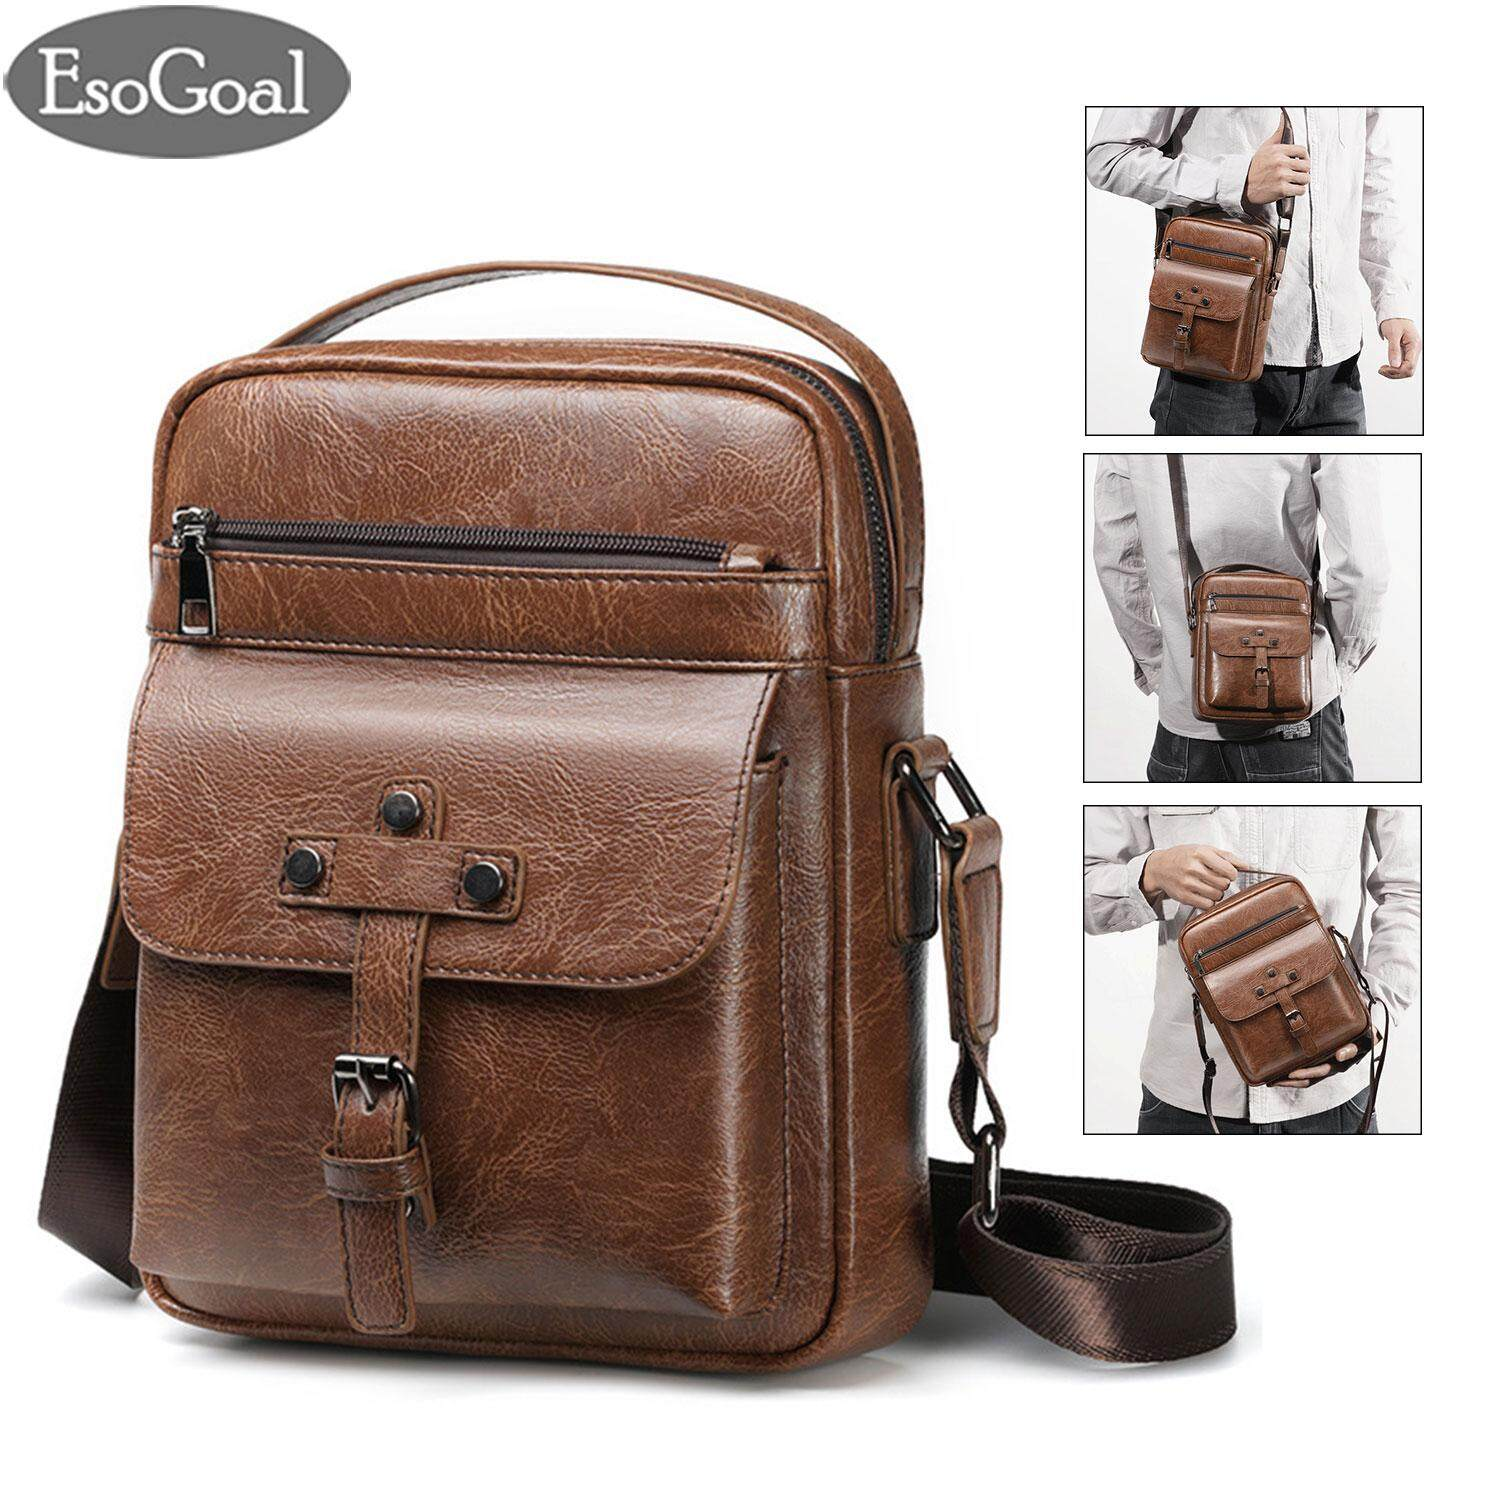 EsoGoal Messenger Bags Men Sling Bag Crossbody Bag Shoulder PU Leather Pouch Bags Business Handbag Bags